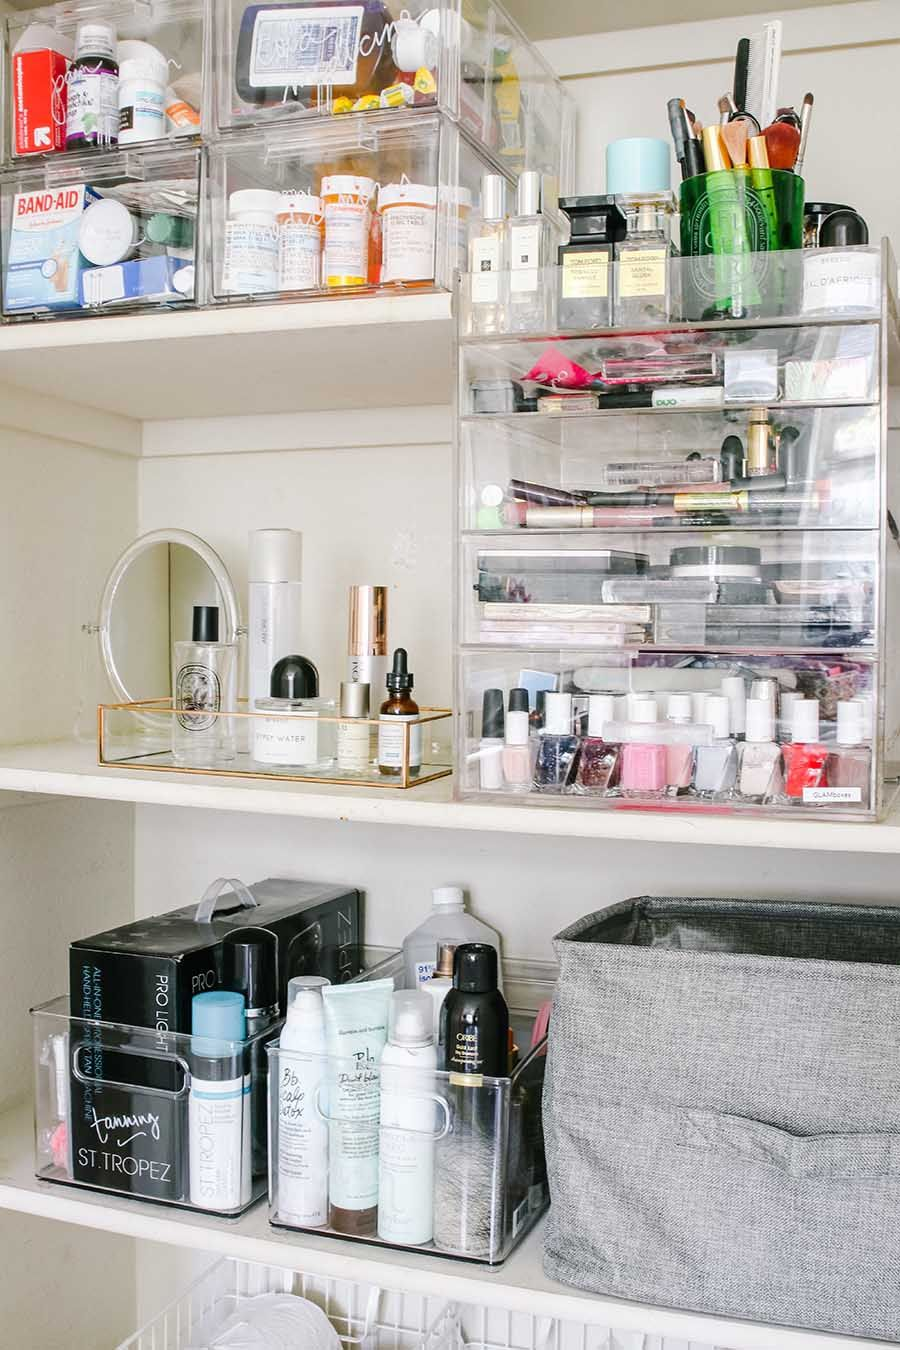 How To Completely Organize Your Bathroom The Hy Housie